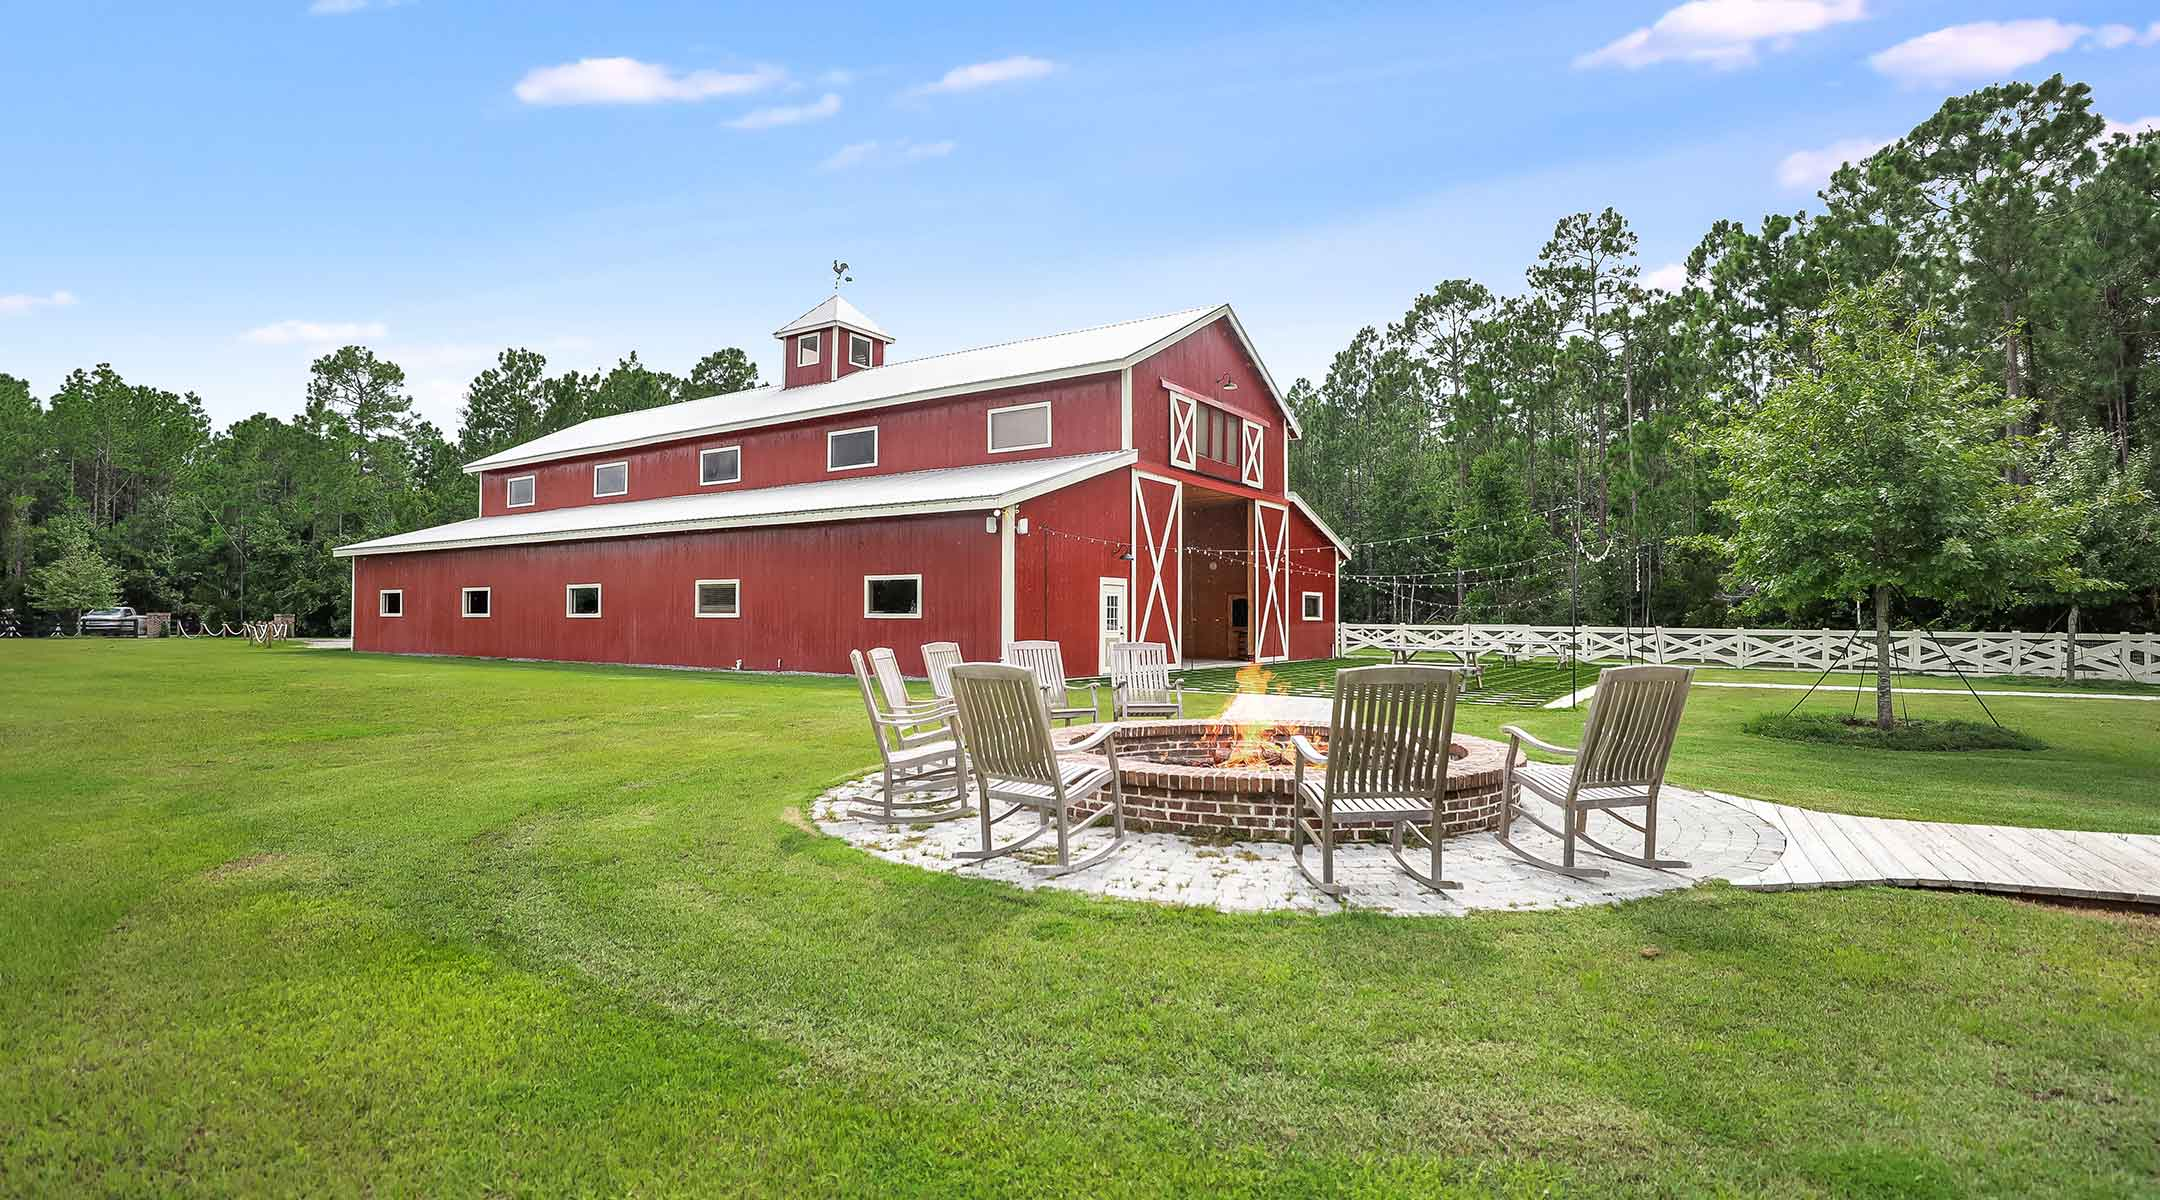 North Florida Barn Banquet Hall For Rent